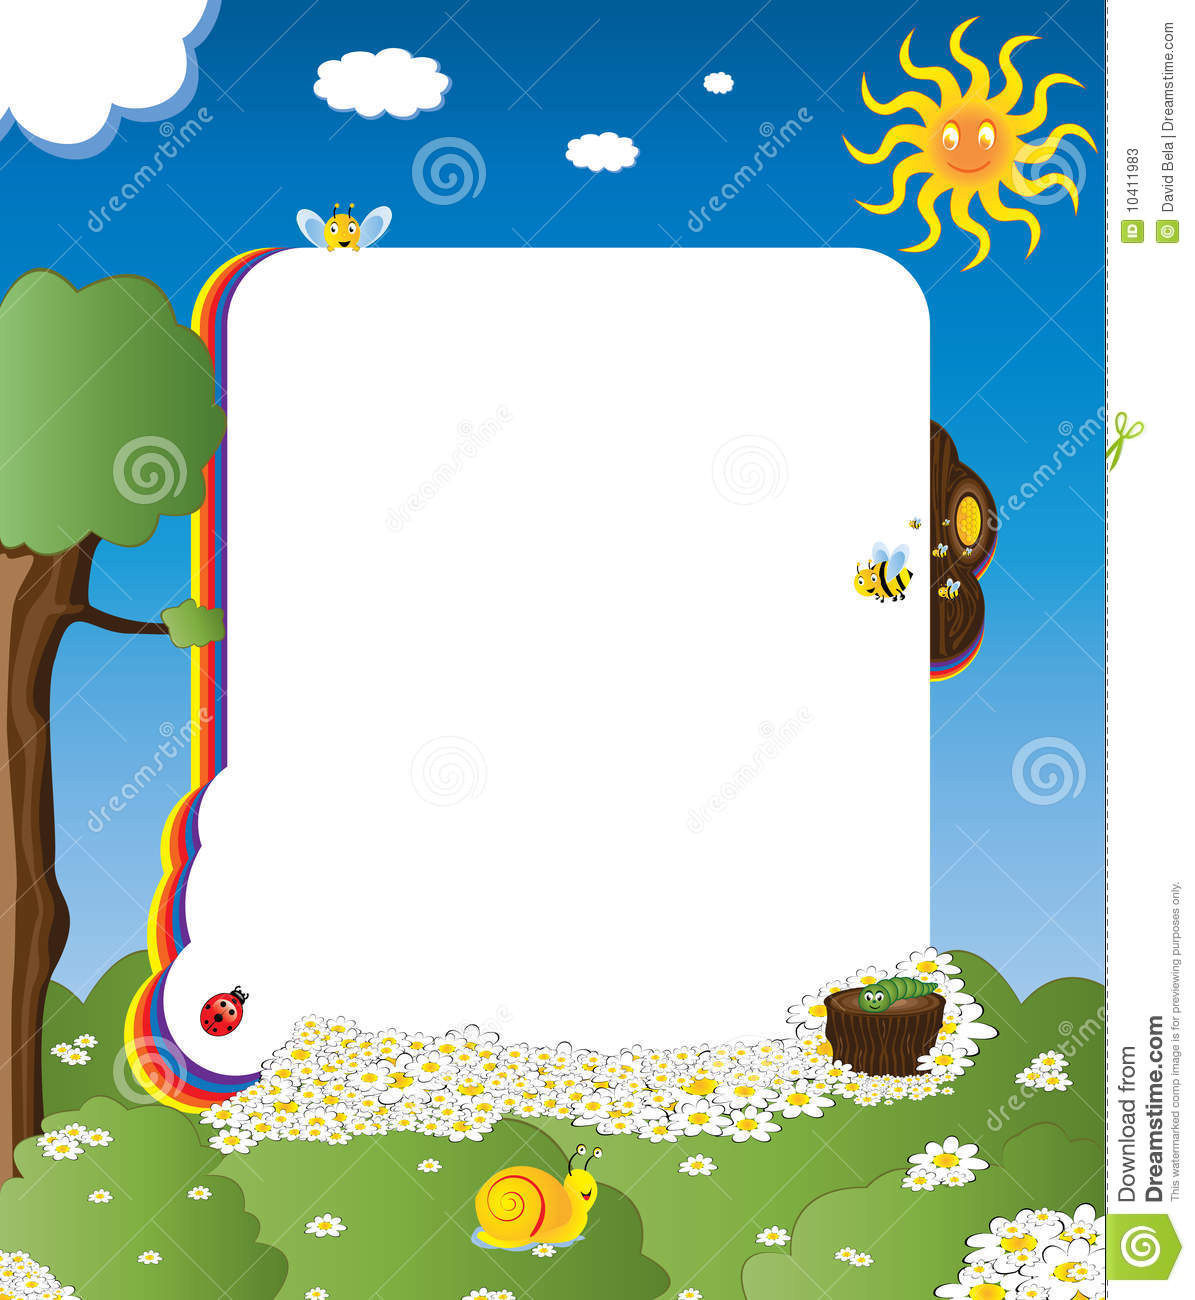 Cartoon Frame With Happy Insects Stock Vector - Illustration of ...